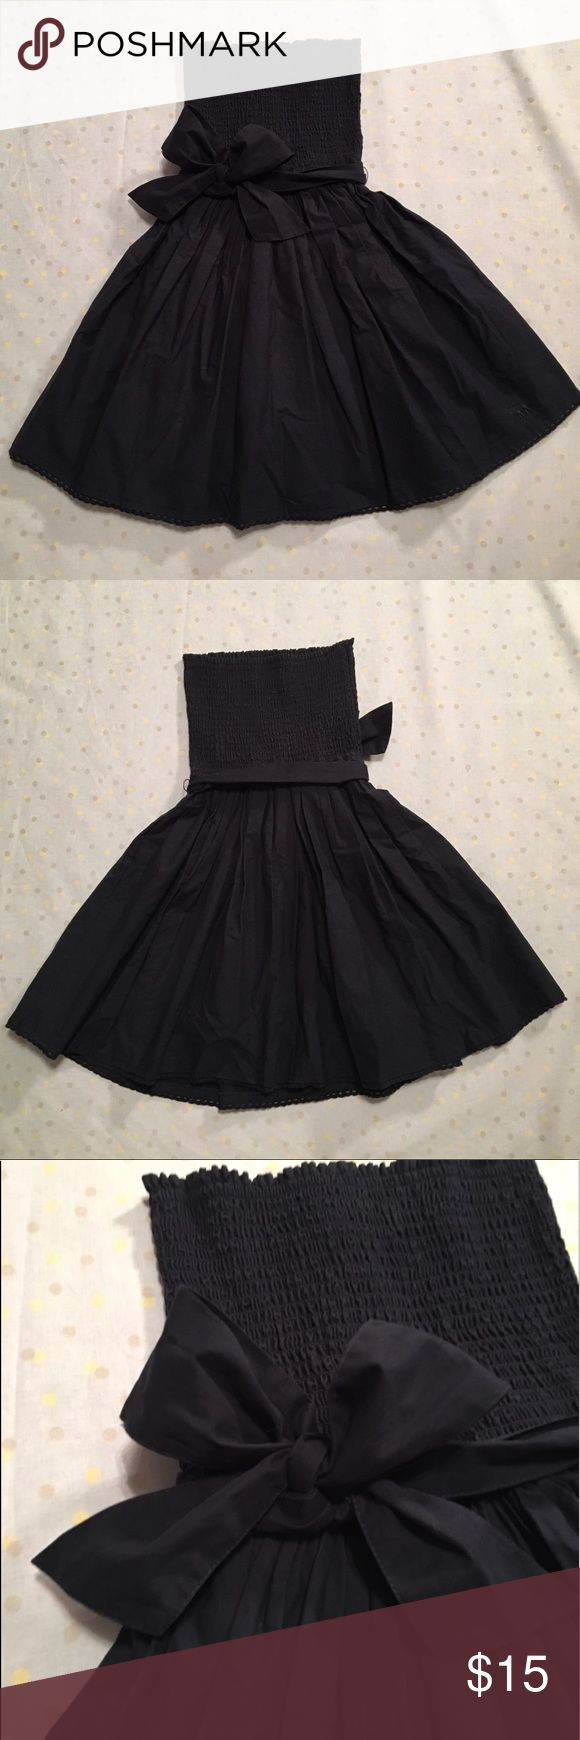 Navy Abercrombie Dress with a Bow Kids Large from Abercrombie Kids. Navy blue with a bow at the waist. Bottom of the dress has little loops that are super cute. Abercombie Kids Dresses